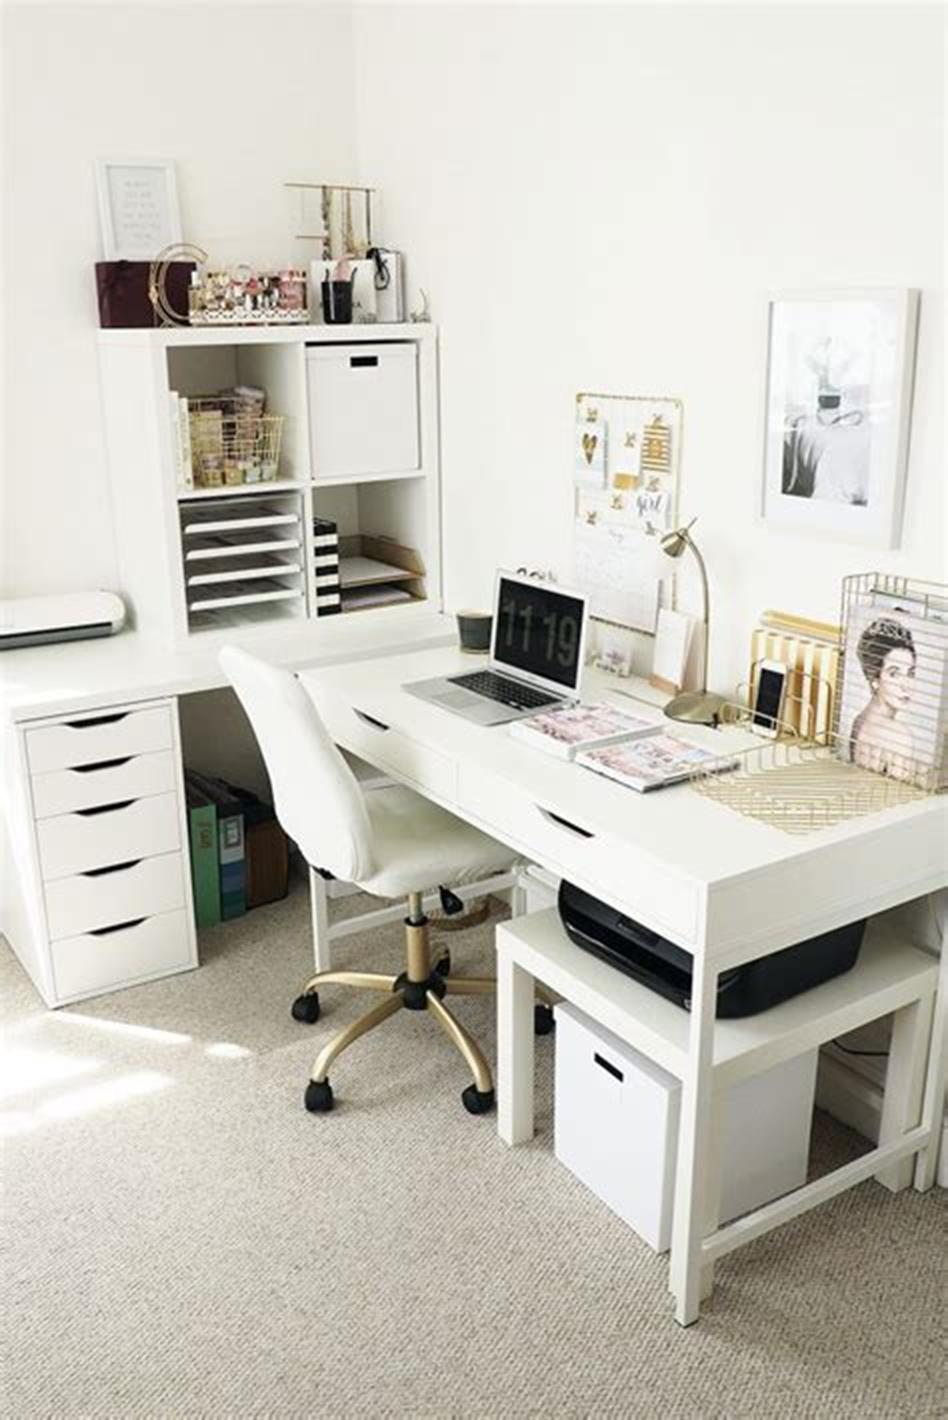 50 Cheap IKEA Home Office Furniture with Design and Decorating Ideas 54 - DecoRewarding